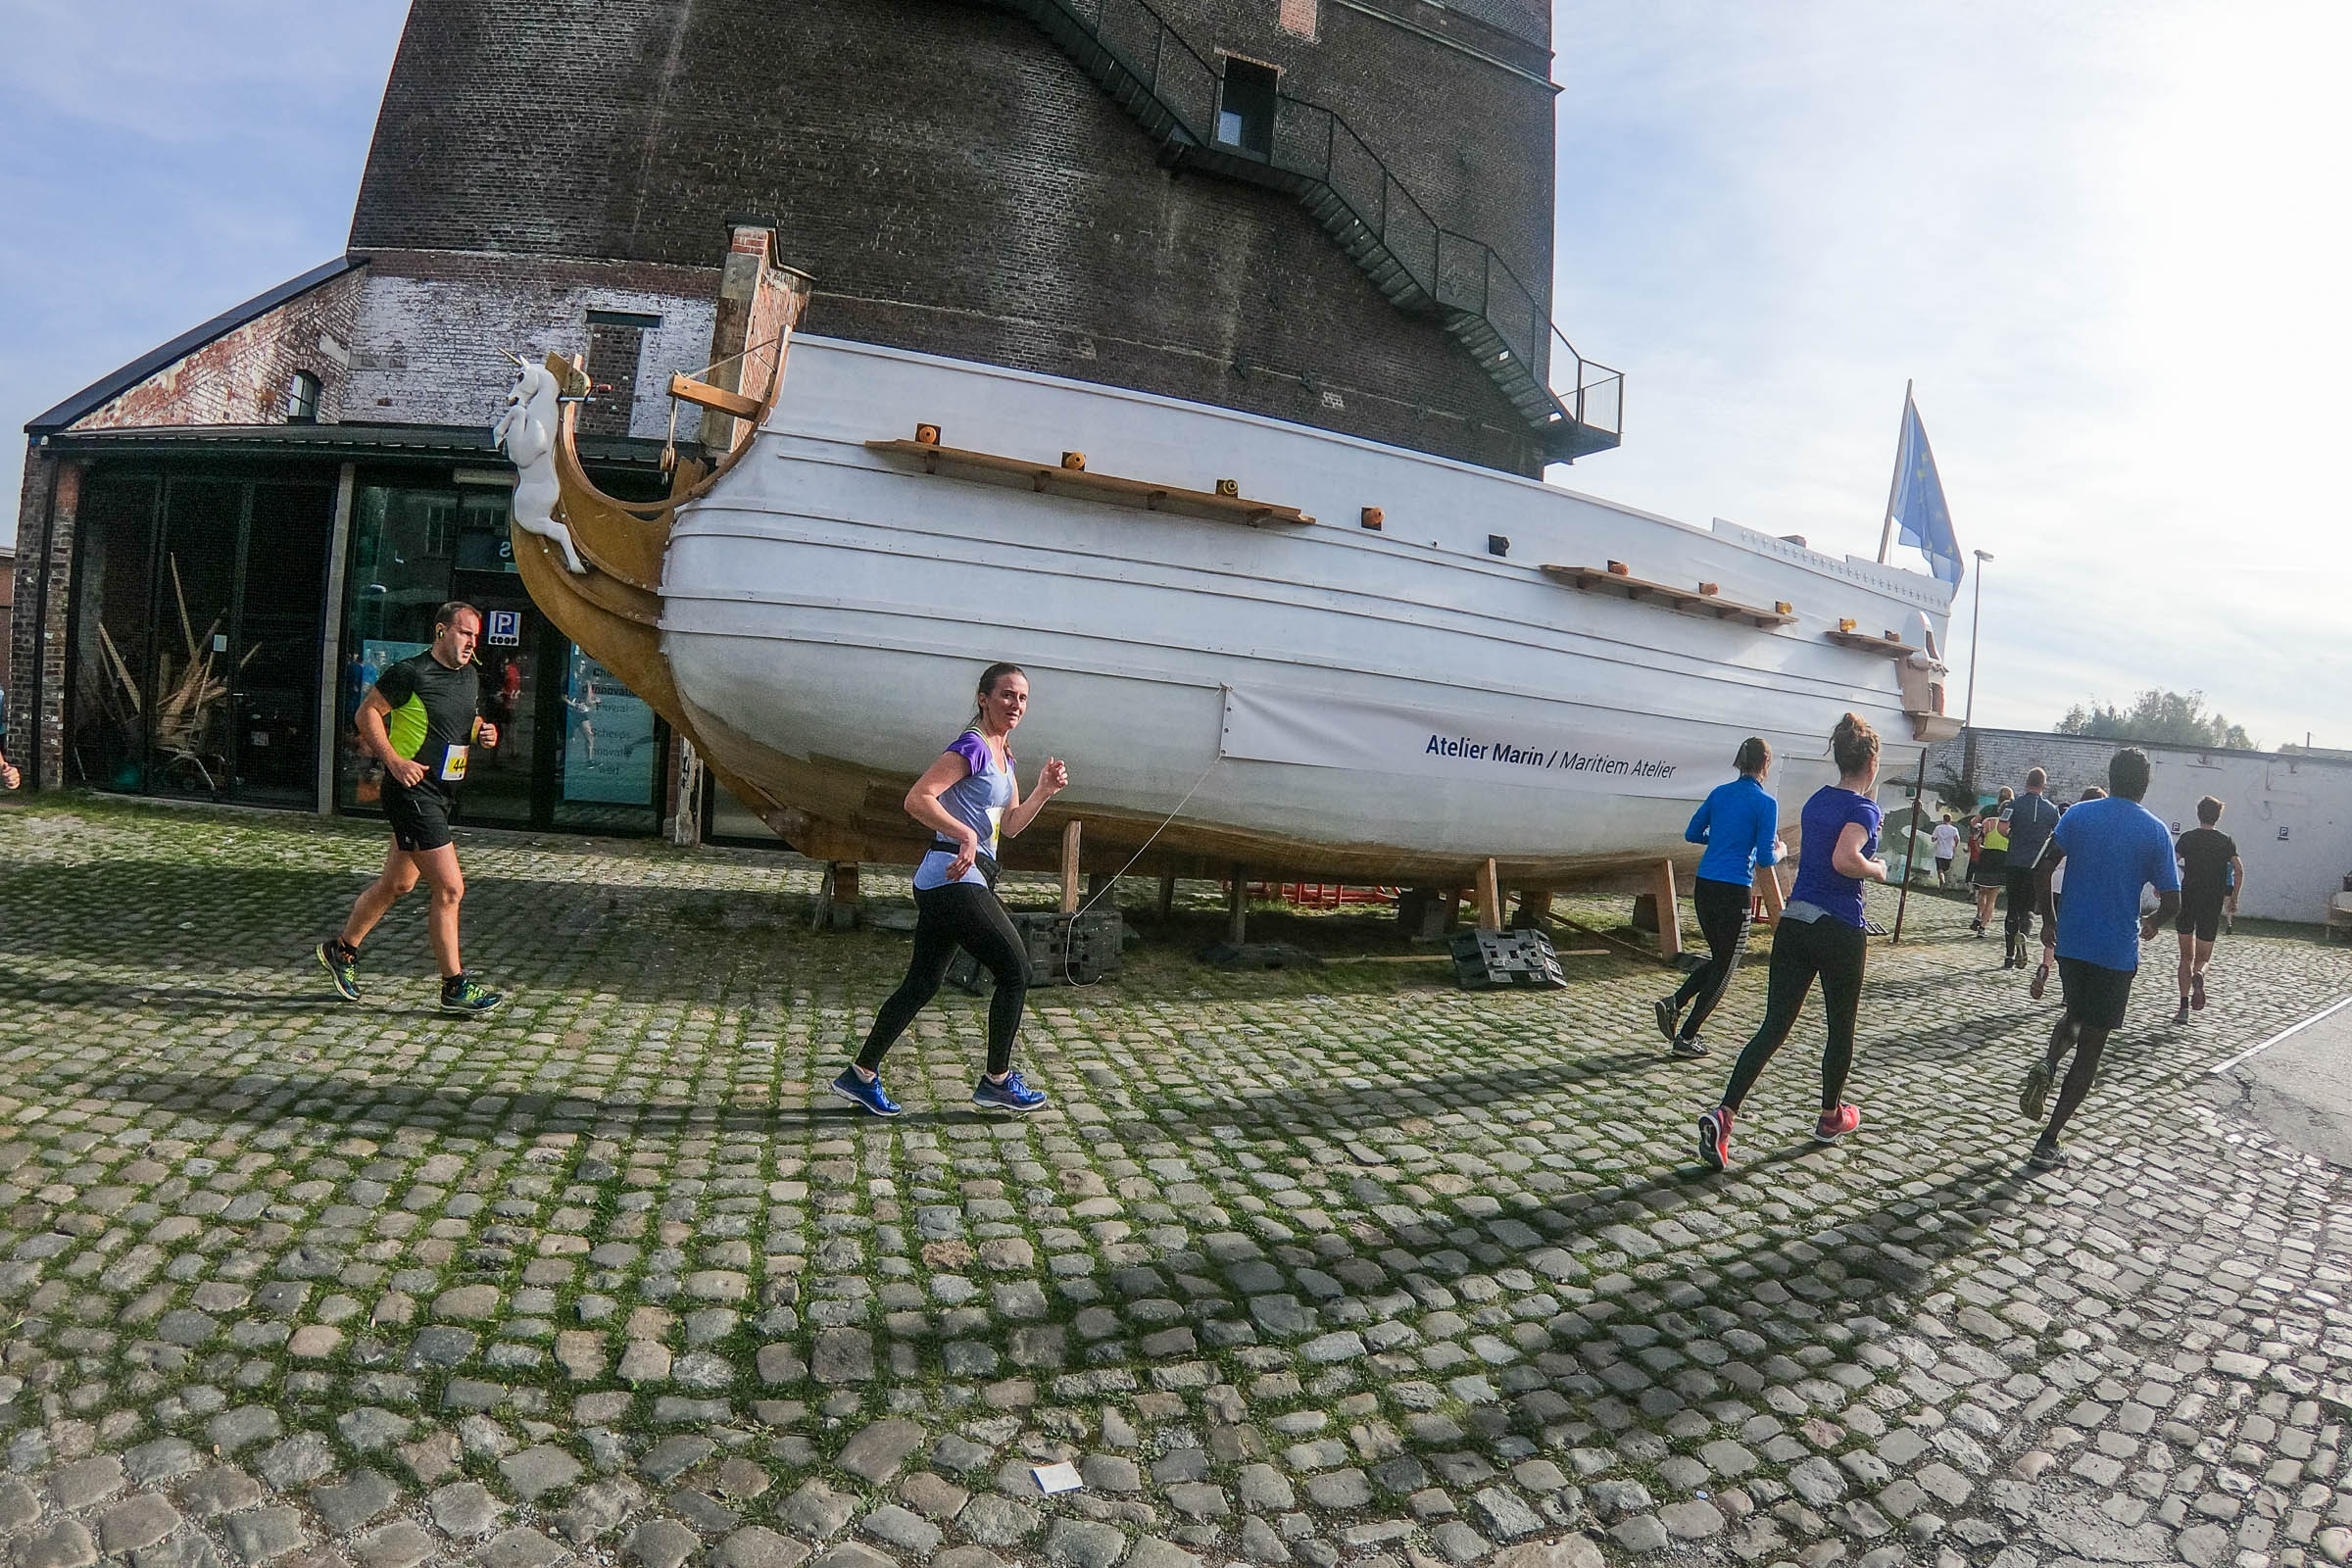 PIC_EVENT_20181020_Brussels-Canal-Run_GOPRO_009.jpg